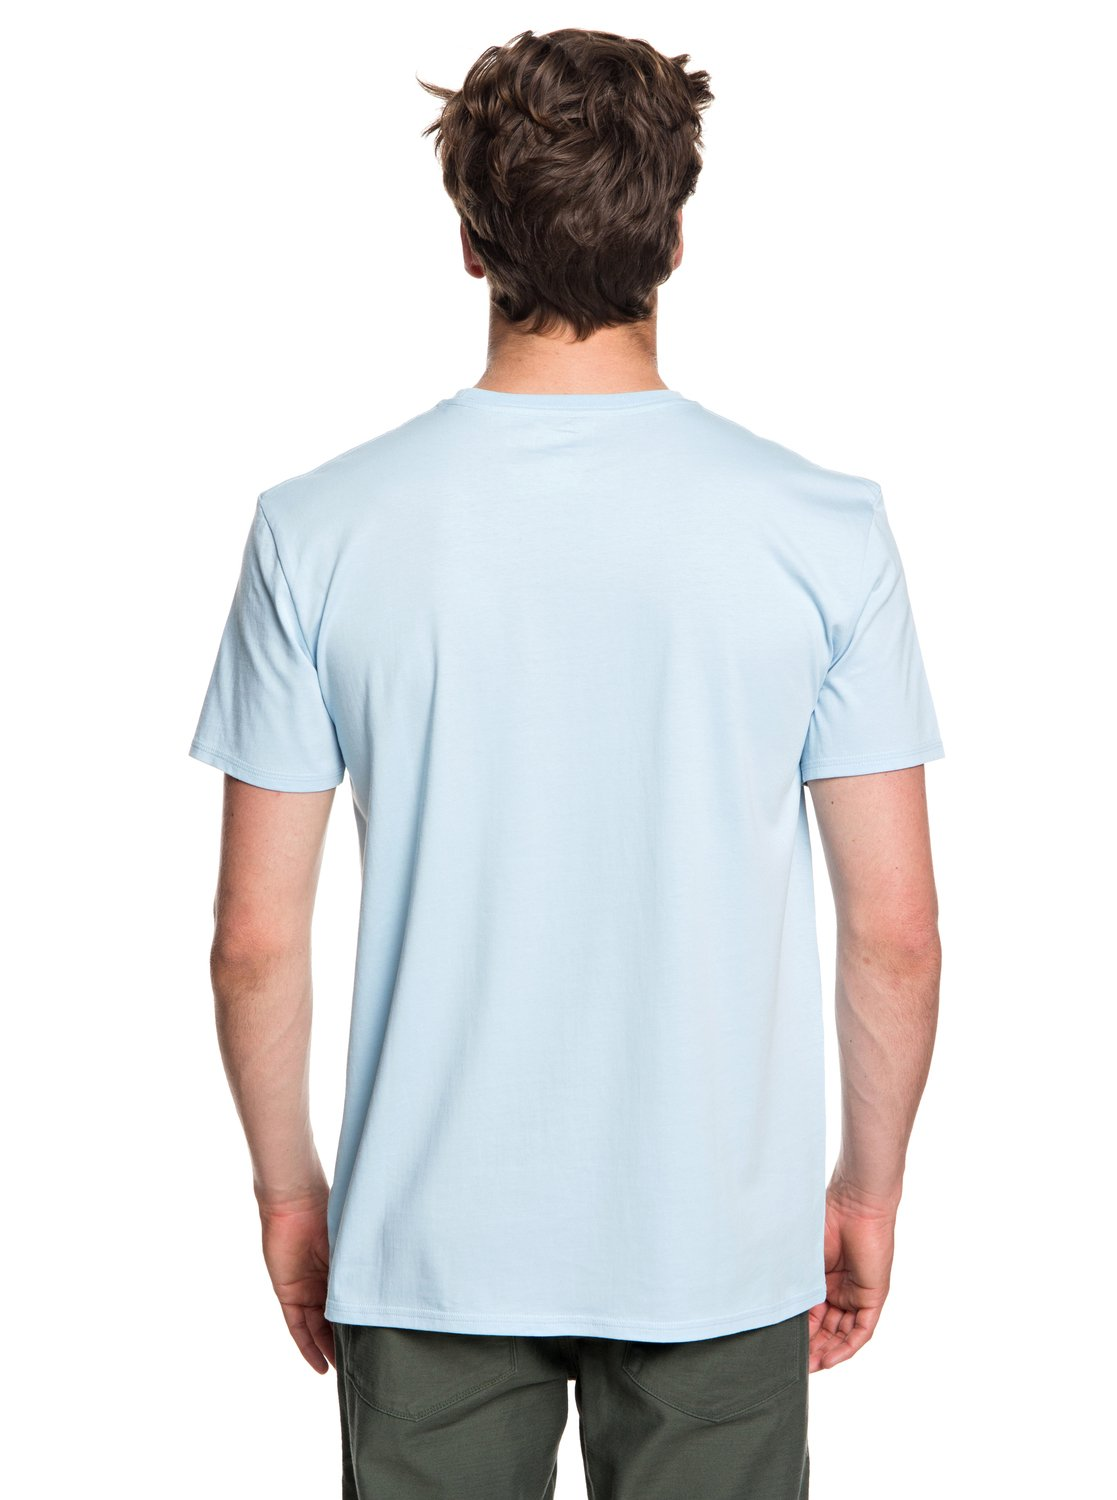 Quiksilver-Photo-Mix-Camiseta-para-Hombre-EQYZT05114 miniatura 3